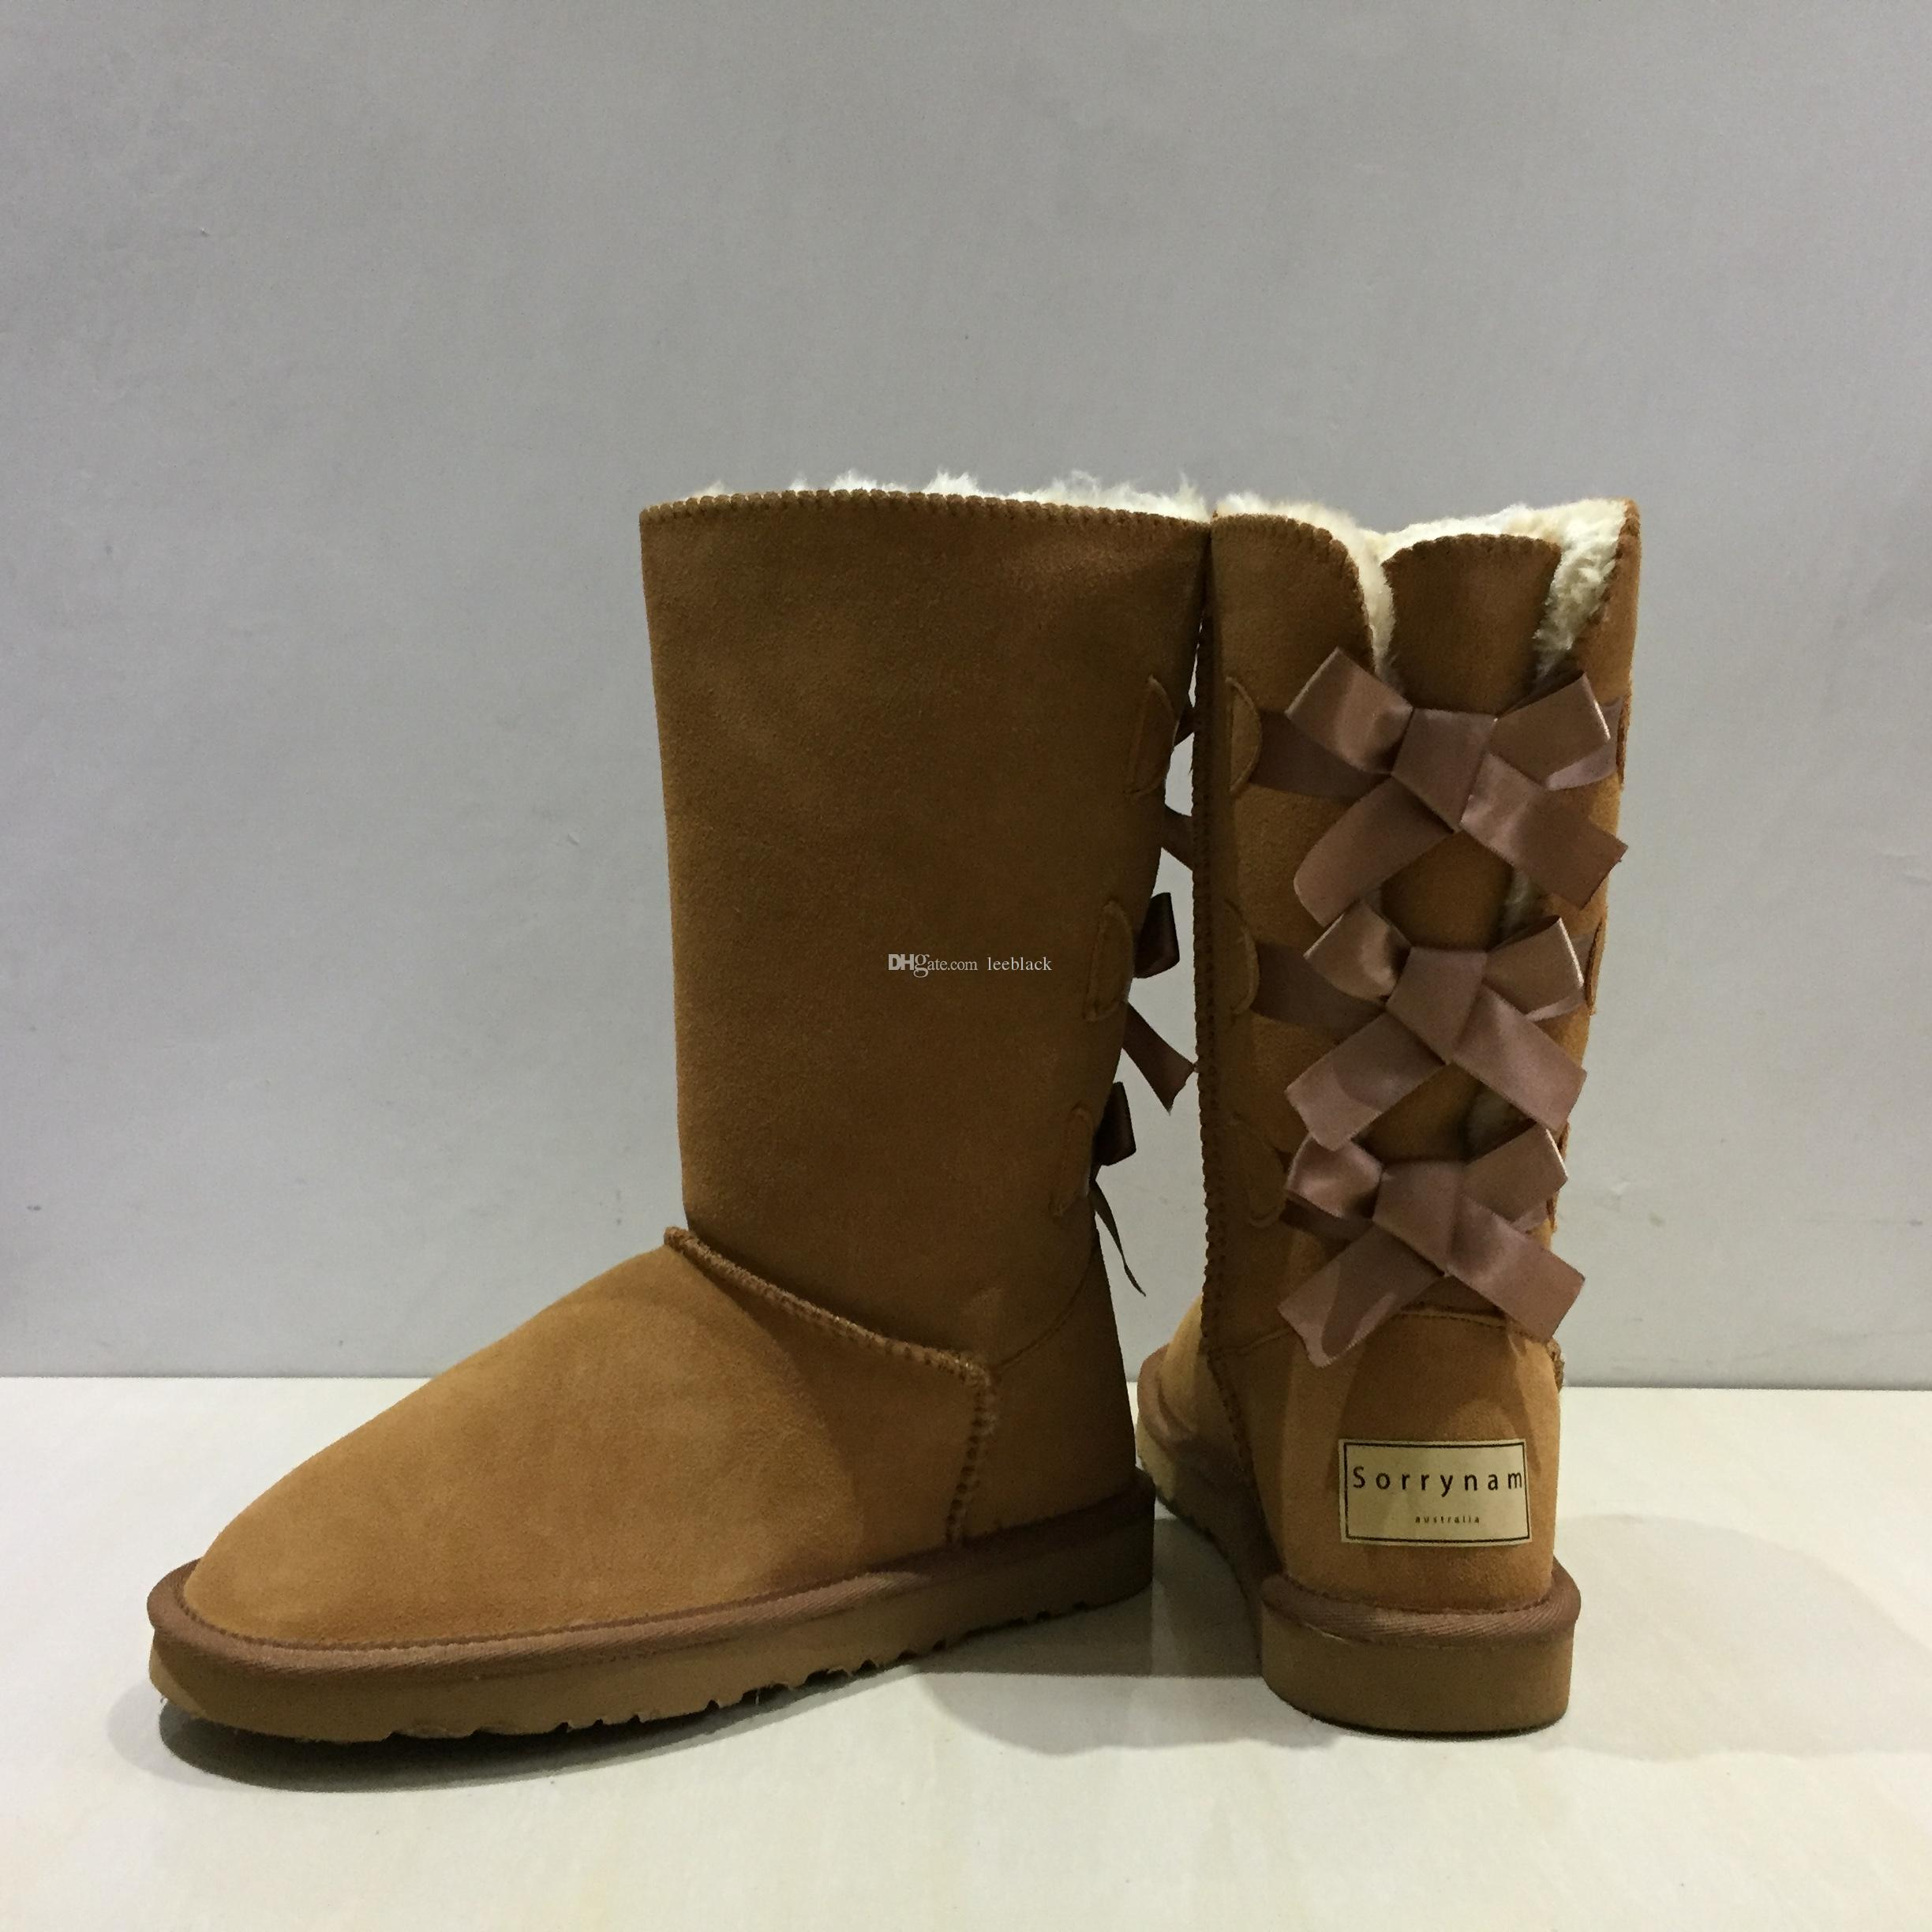 2017 Winter New Australia Classic Bailey Style Women Snow Boots Winter High  Quality 3 Bowtie Tall Snow Boots Women Winter Shoes Size 35-41 Online with  ... bf8a3498d90a